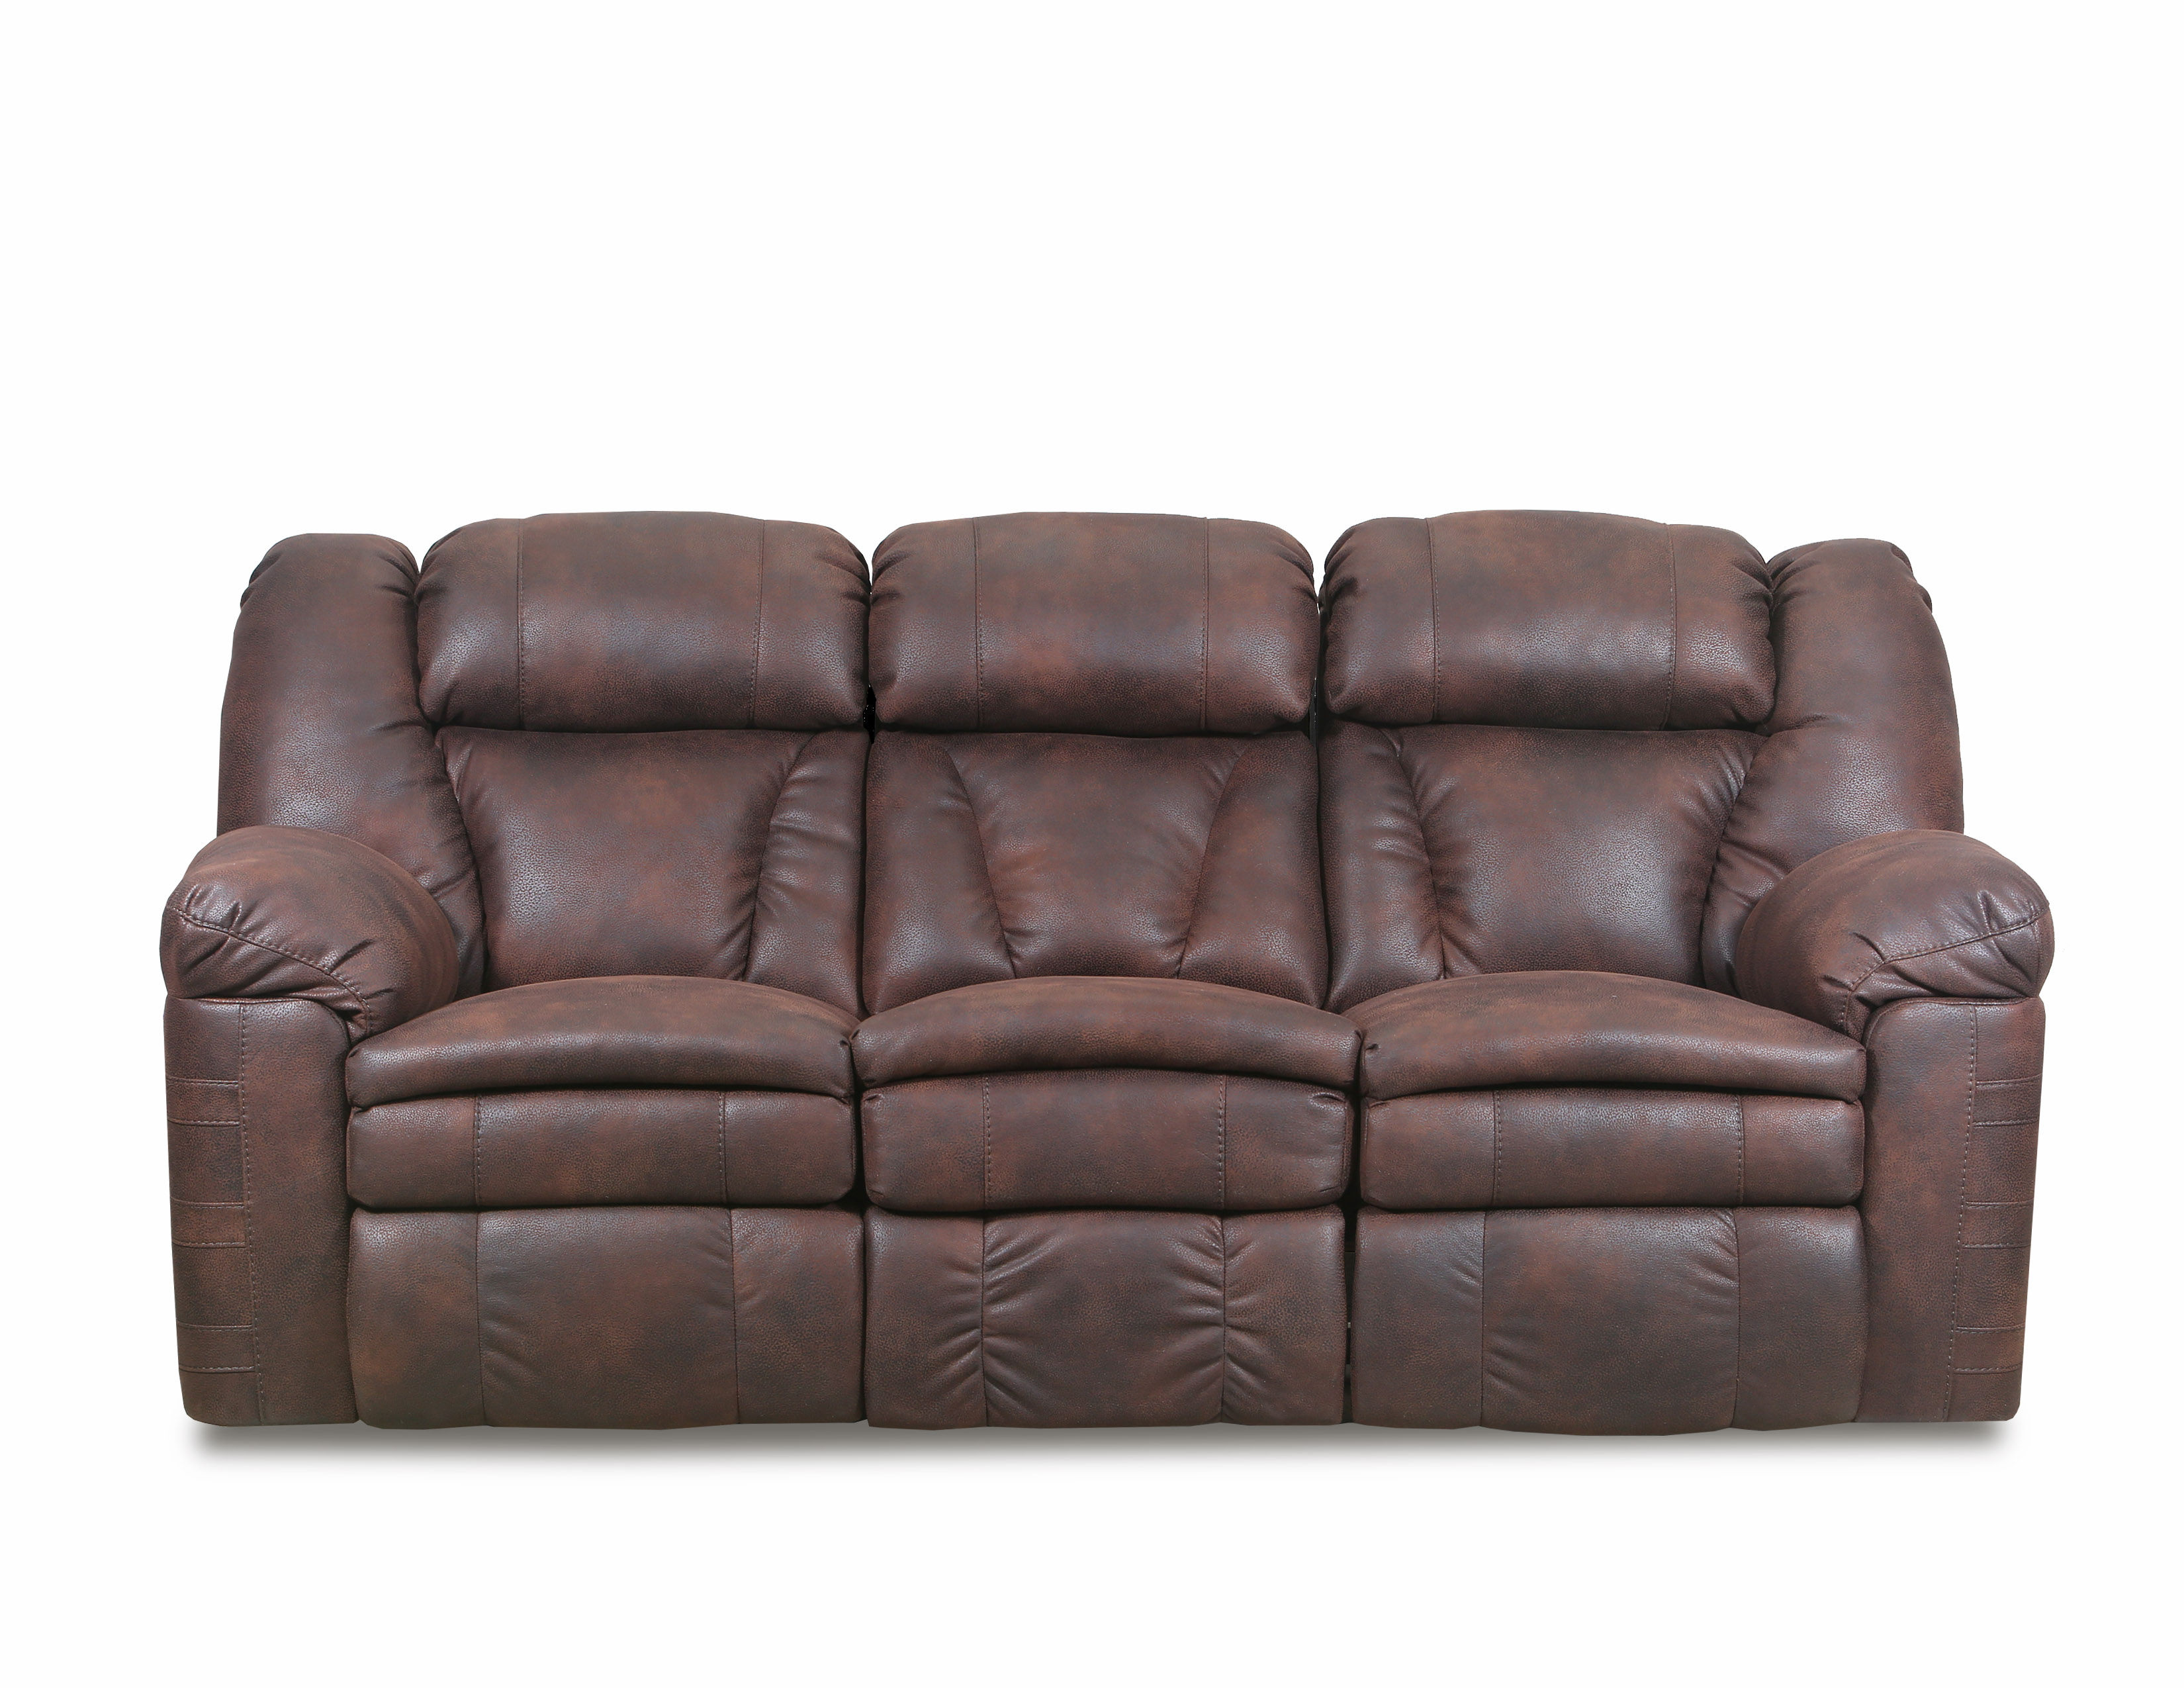 Bowen Redwood Leather Reclining Sofa